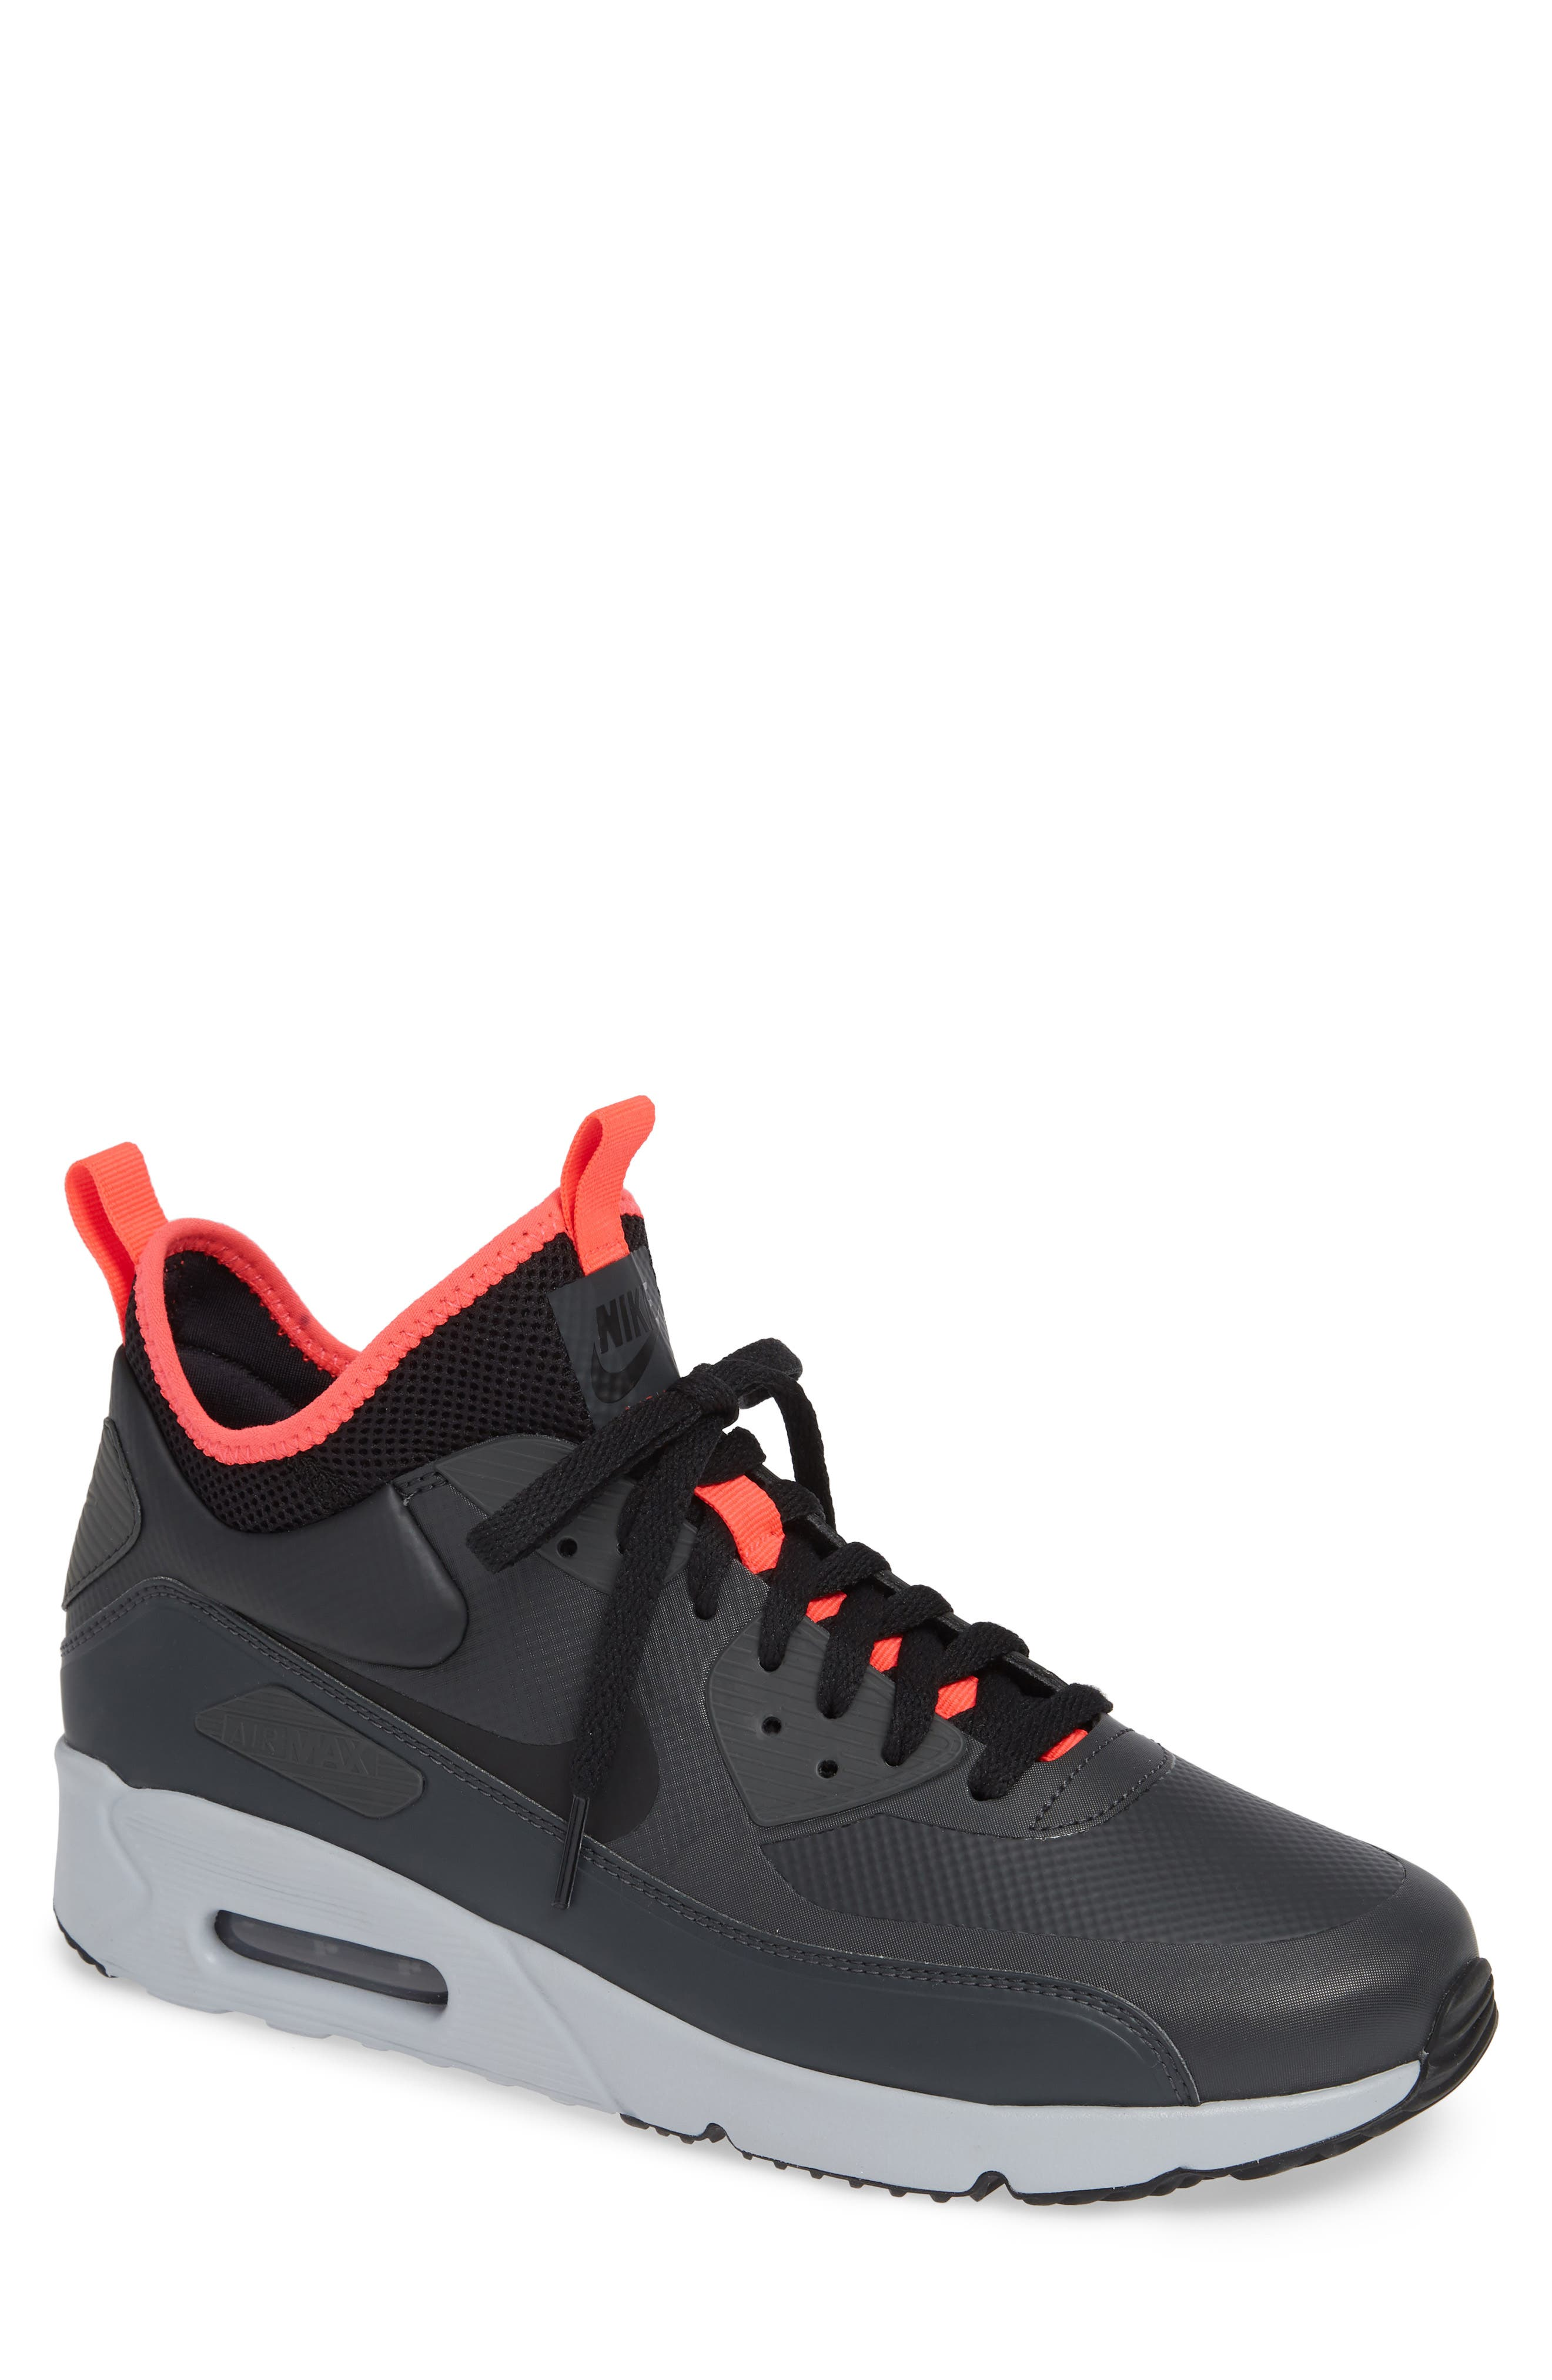 air max 90 ultra mid winter se mens trainers